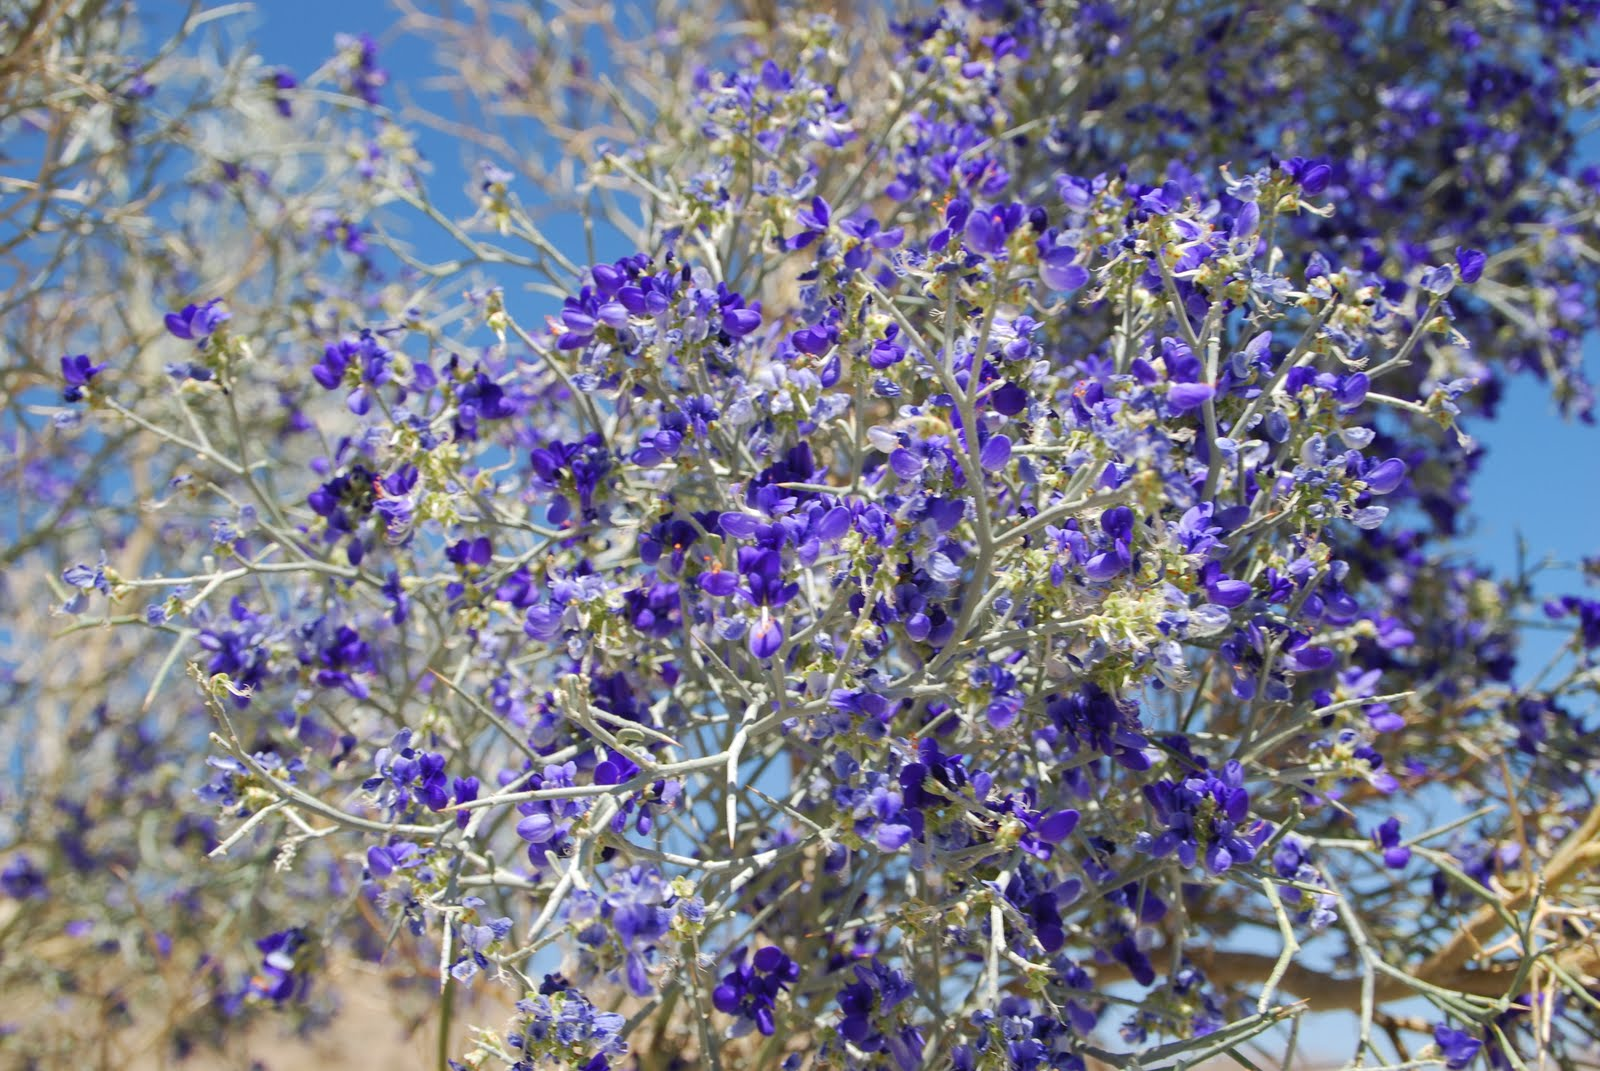 Desert garden smoke tree blossomstodays flowers 062710 the smoke trees here in our valley are blooming right now and i stopped one afternoon last week to take some photos of them the usually gray trees and now mightylinksfo